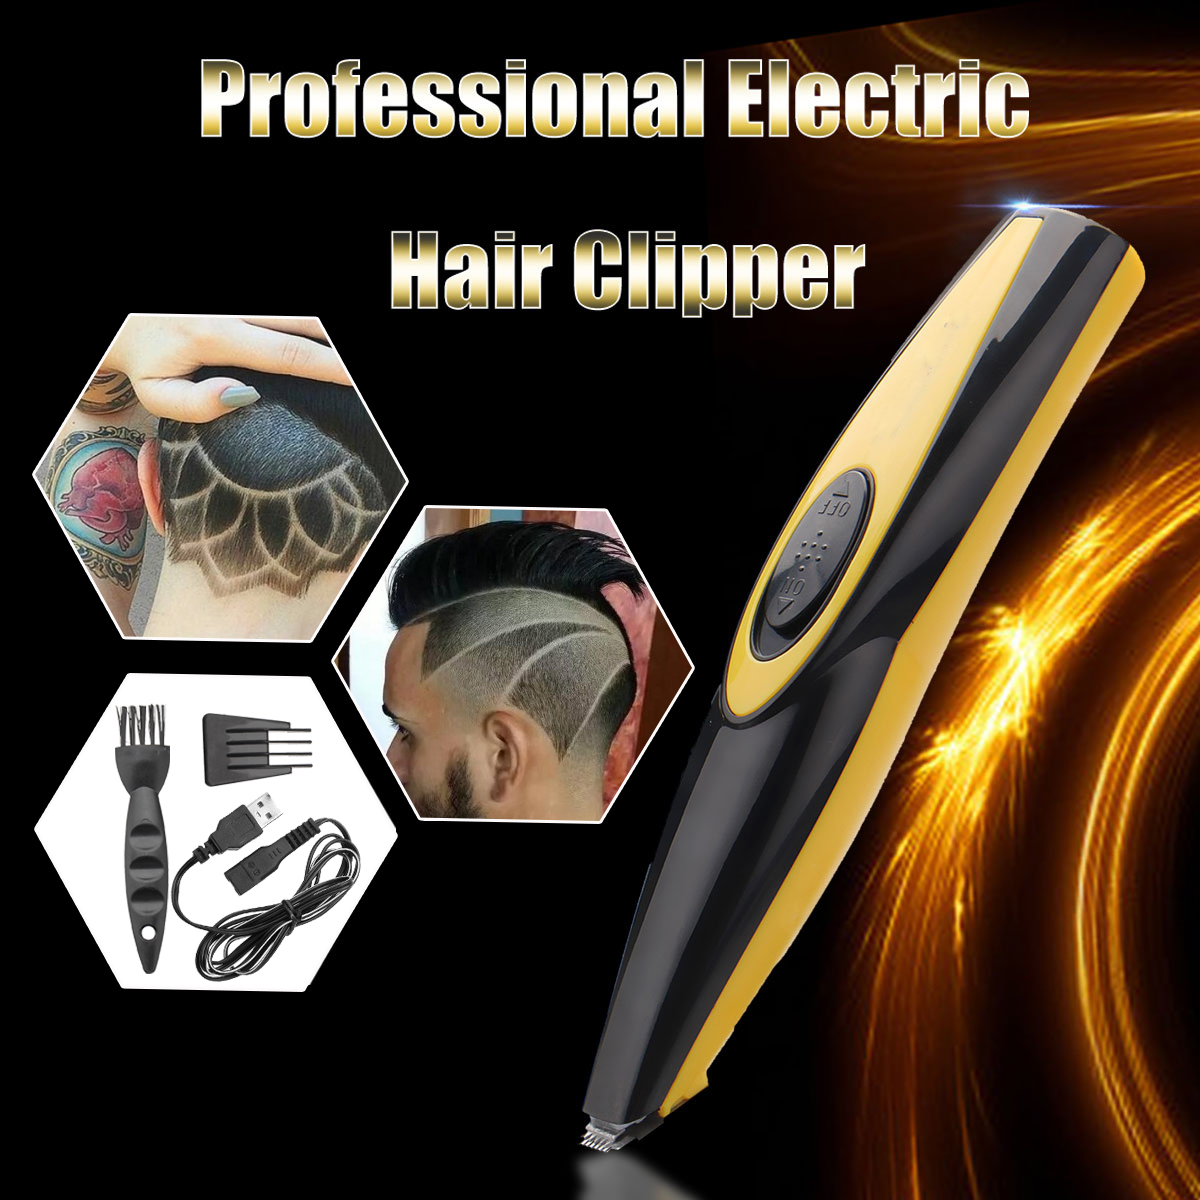 Mini Electric Hair Clipper Rechargeable USB Plug Dual Charging Cutting Tool 220V 50Hz